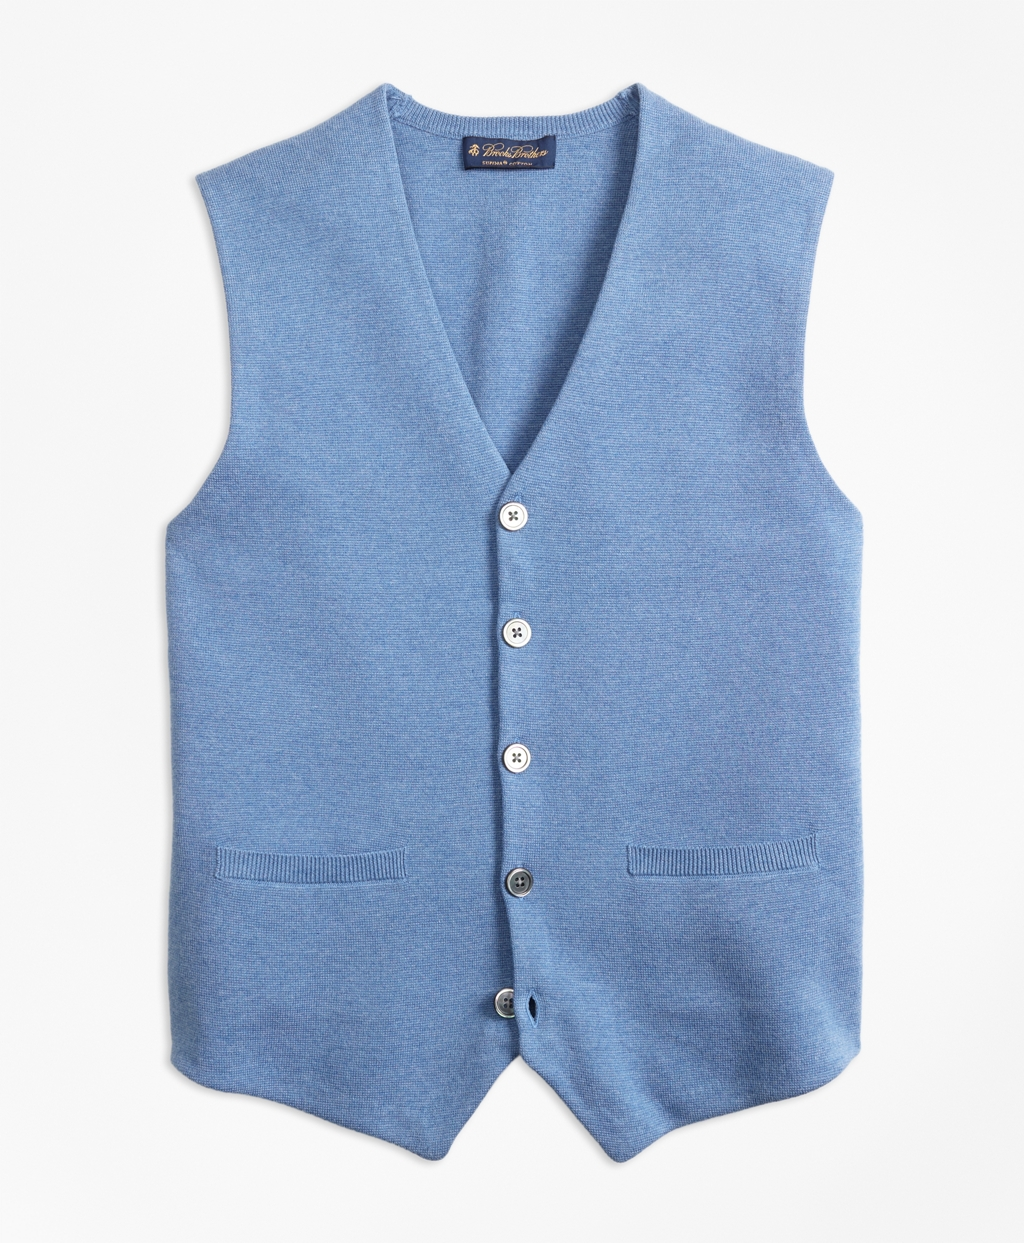 1940s Style Mens Shirts, Sweaters, Vests Brooks Brothers Mens Supima Cotton Sweater Waistcoat $98.50 AT vintagedancer.com